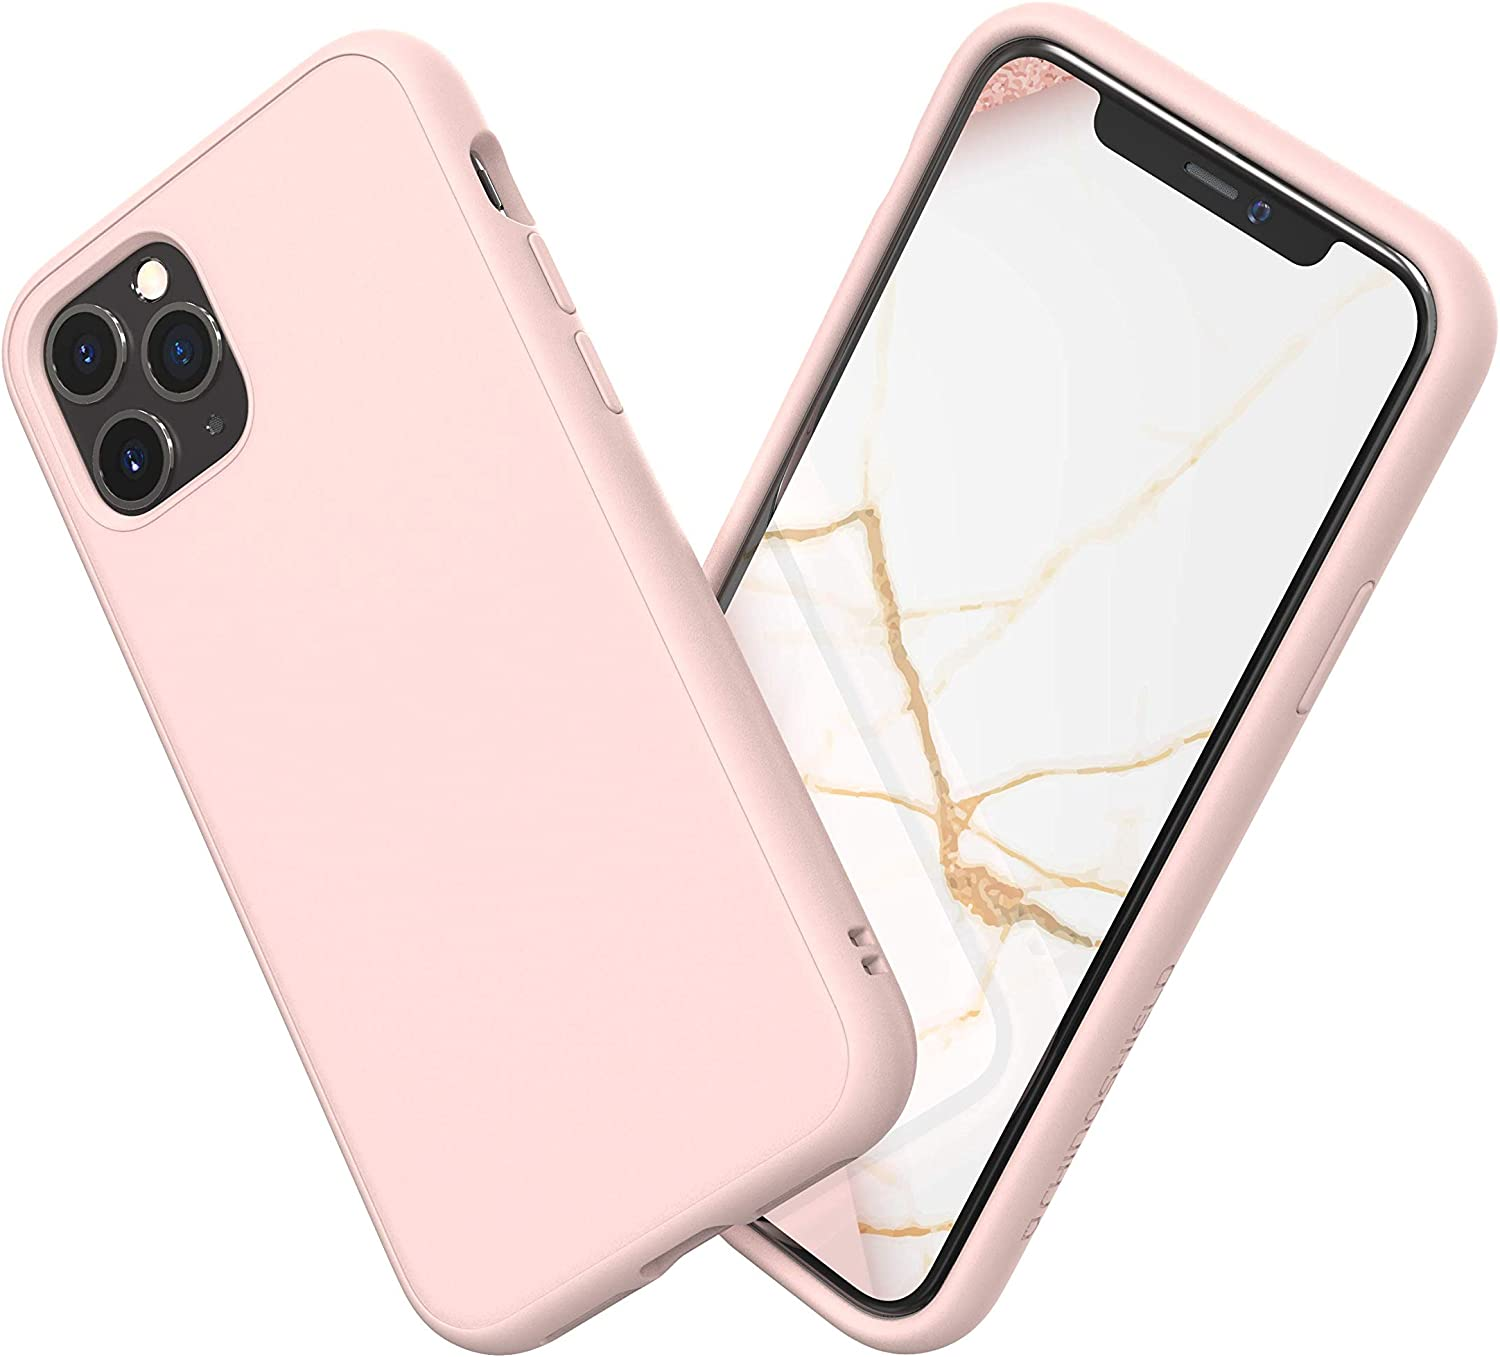 Amazon.com: RhinoShield Case Compatible with [iPhone 11 Pro Max] |  SolidSuit - Shock Absorbent Slim Design Protective Cover with Premium Matte  Finish 3.5M / 11ft Drop Protection - Blush Pink